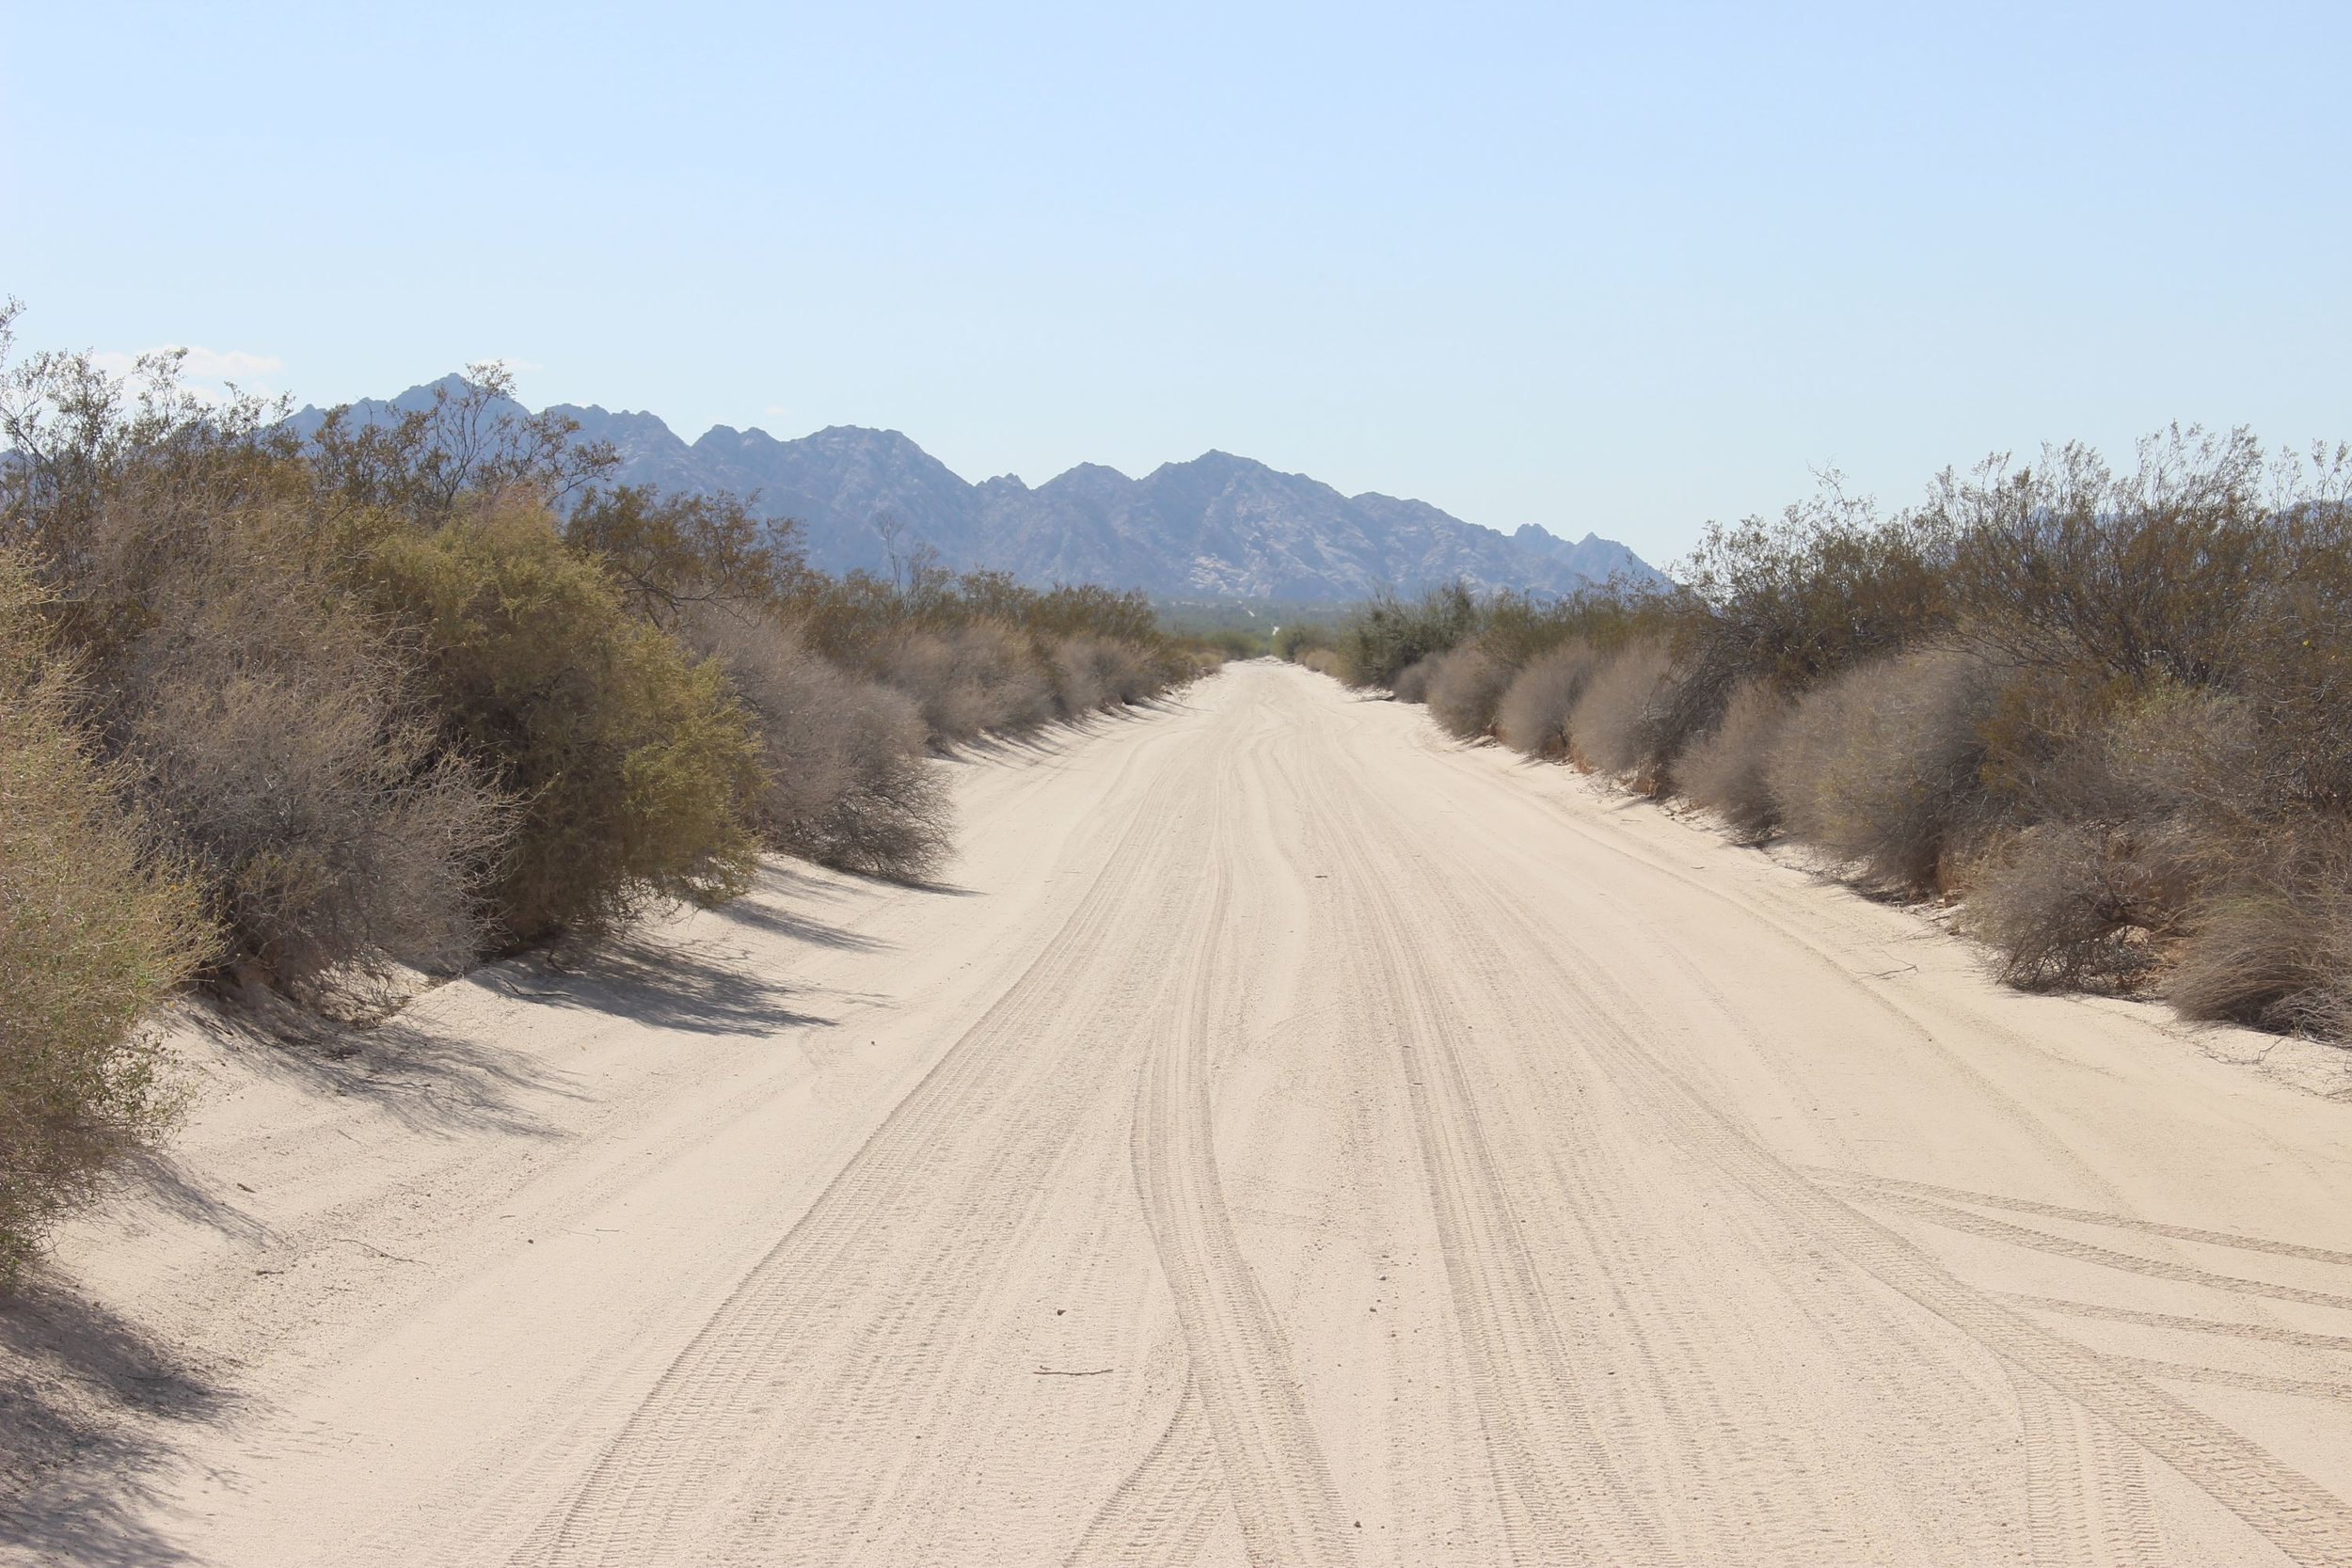 A smooth El Camino heads west into Barry M. Goldwater Air Force Range.